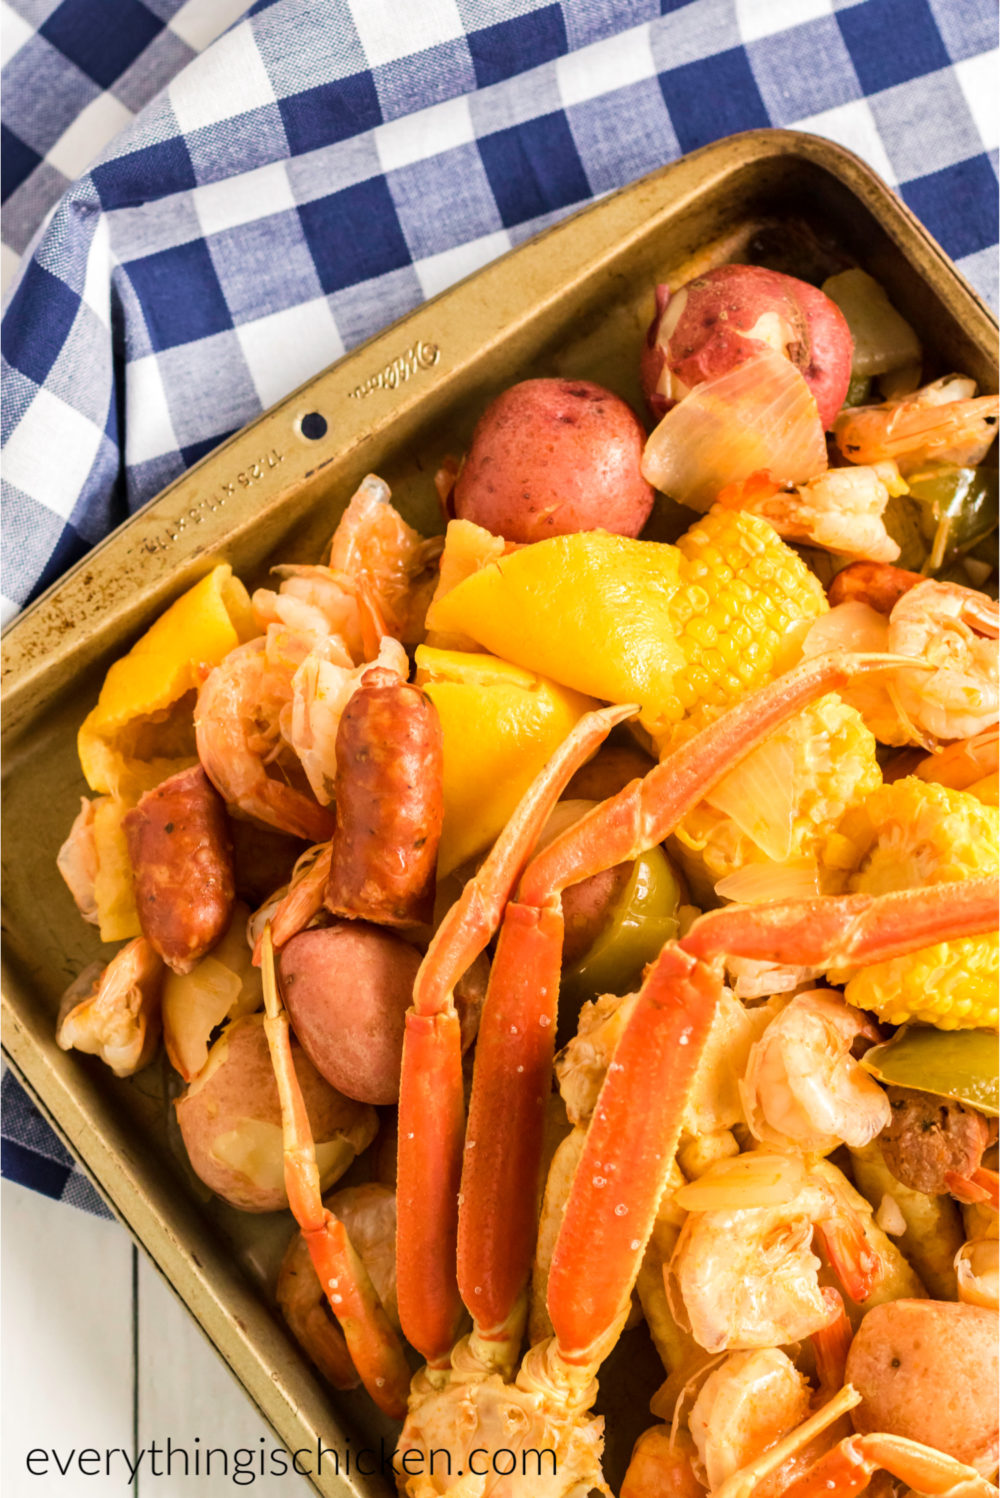 Cajun seafood boil on a checkered napkin and ready to serve.